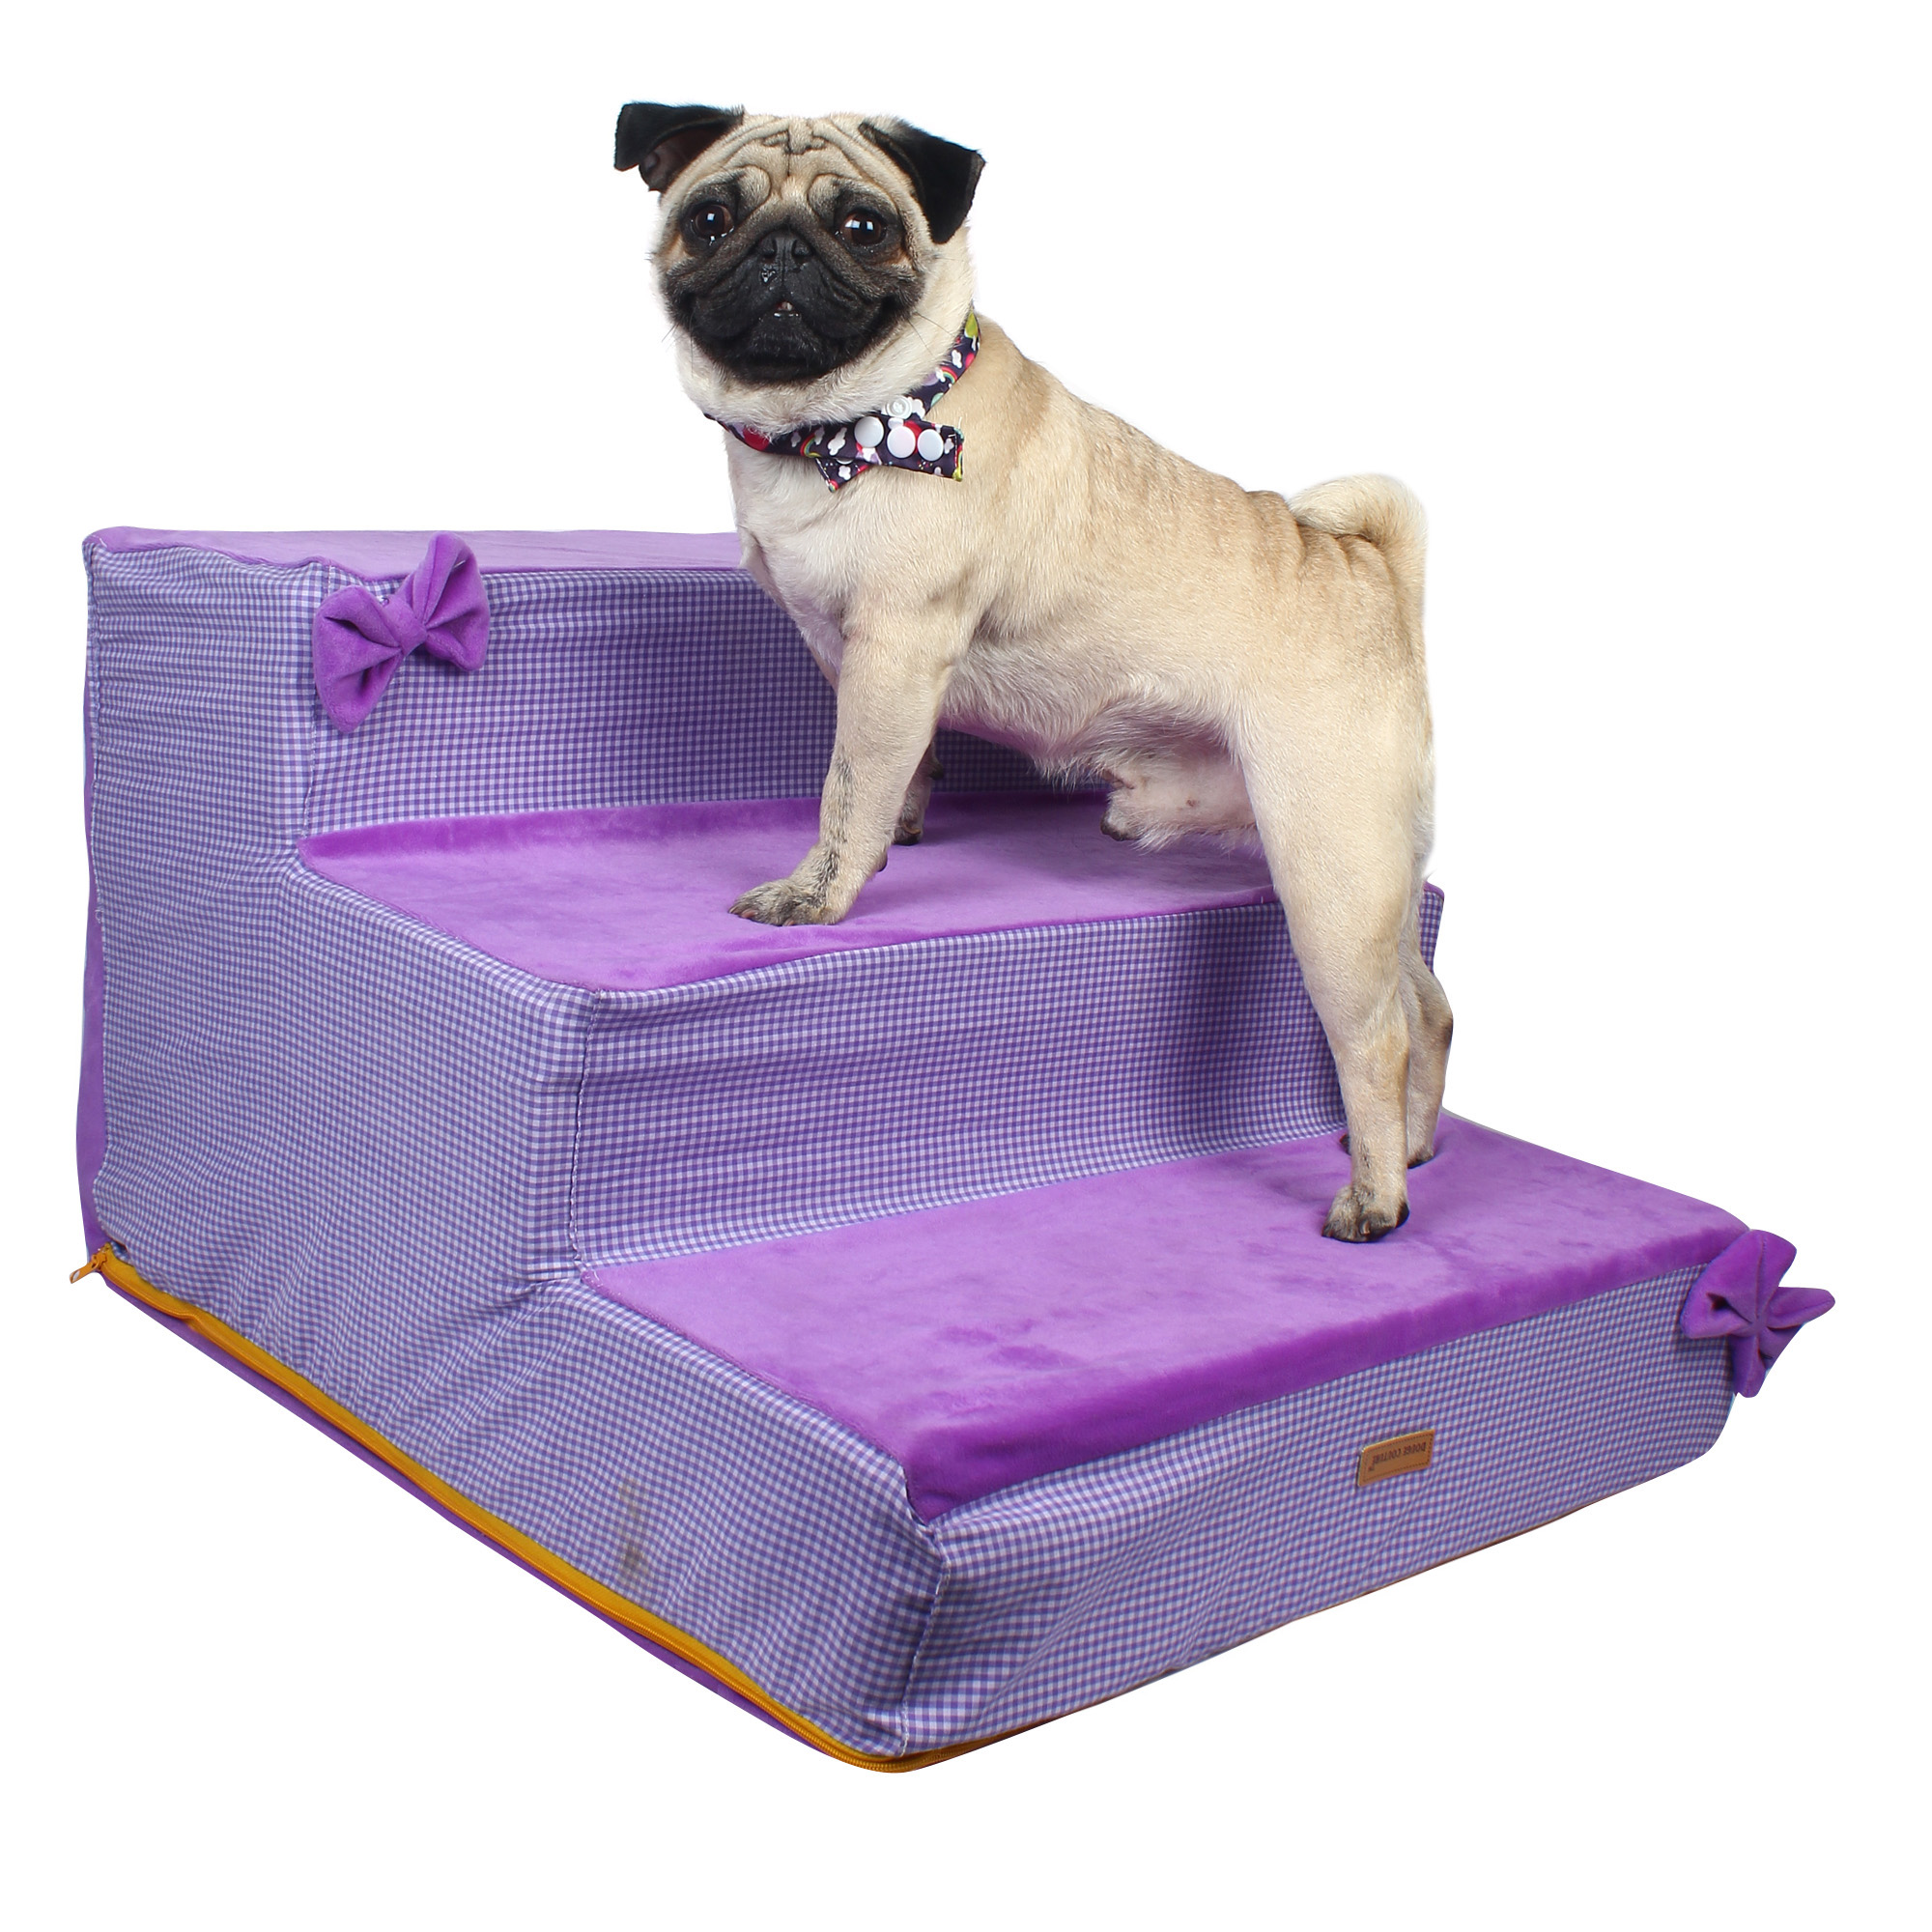 Dog stairs Steps Ramp Ladder purple check